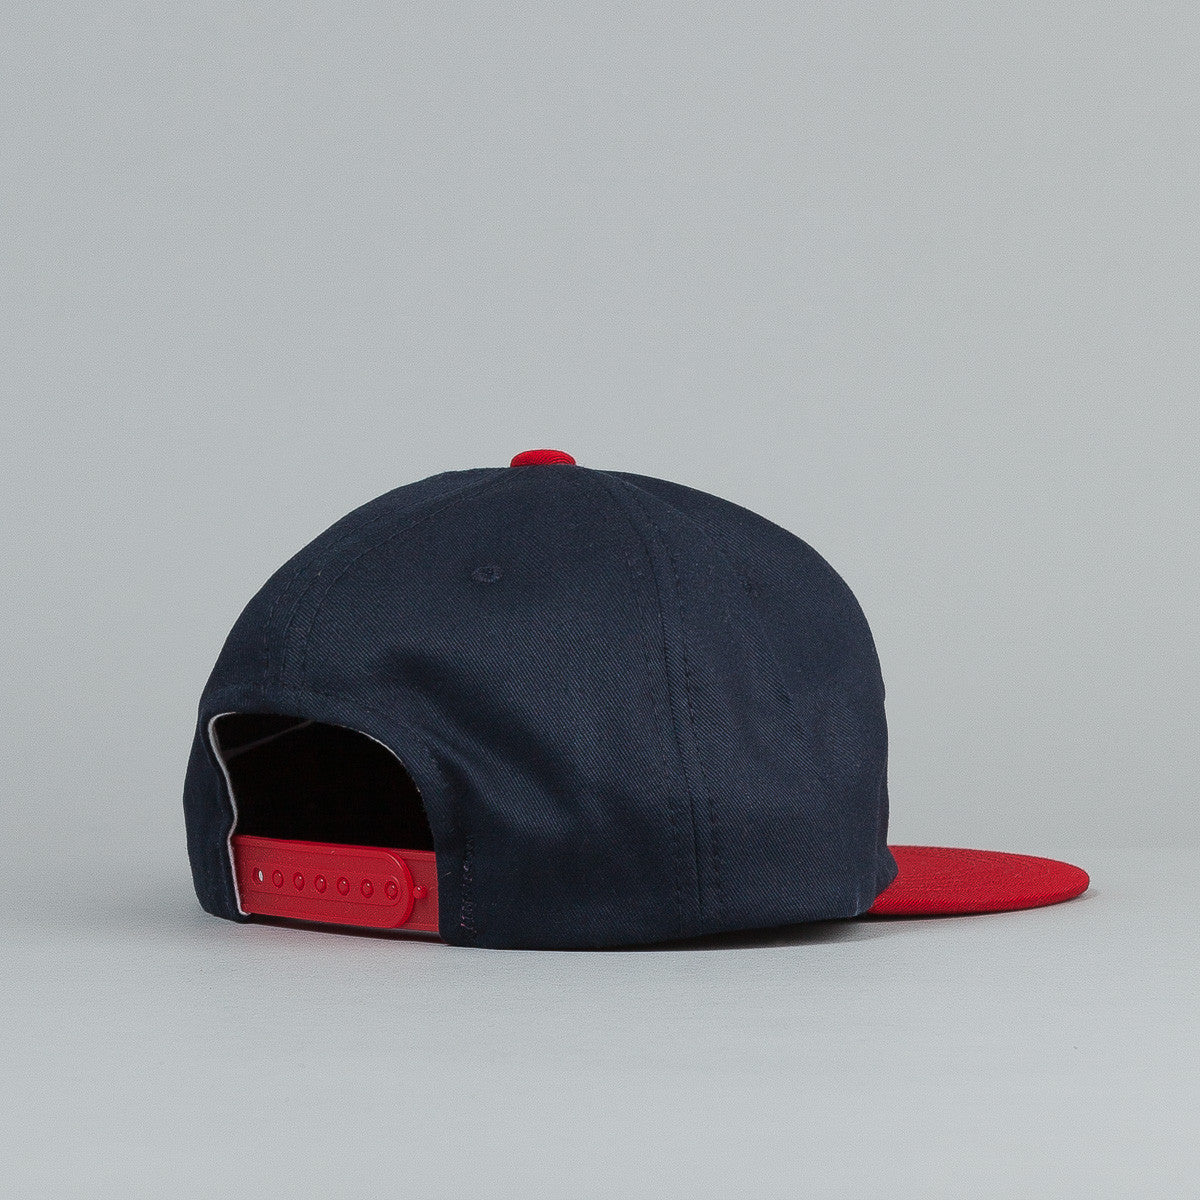 The Decades '76 Team USA Snapback Cap - Navy / Red